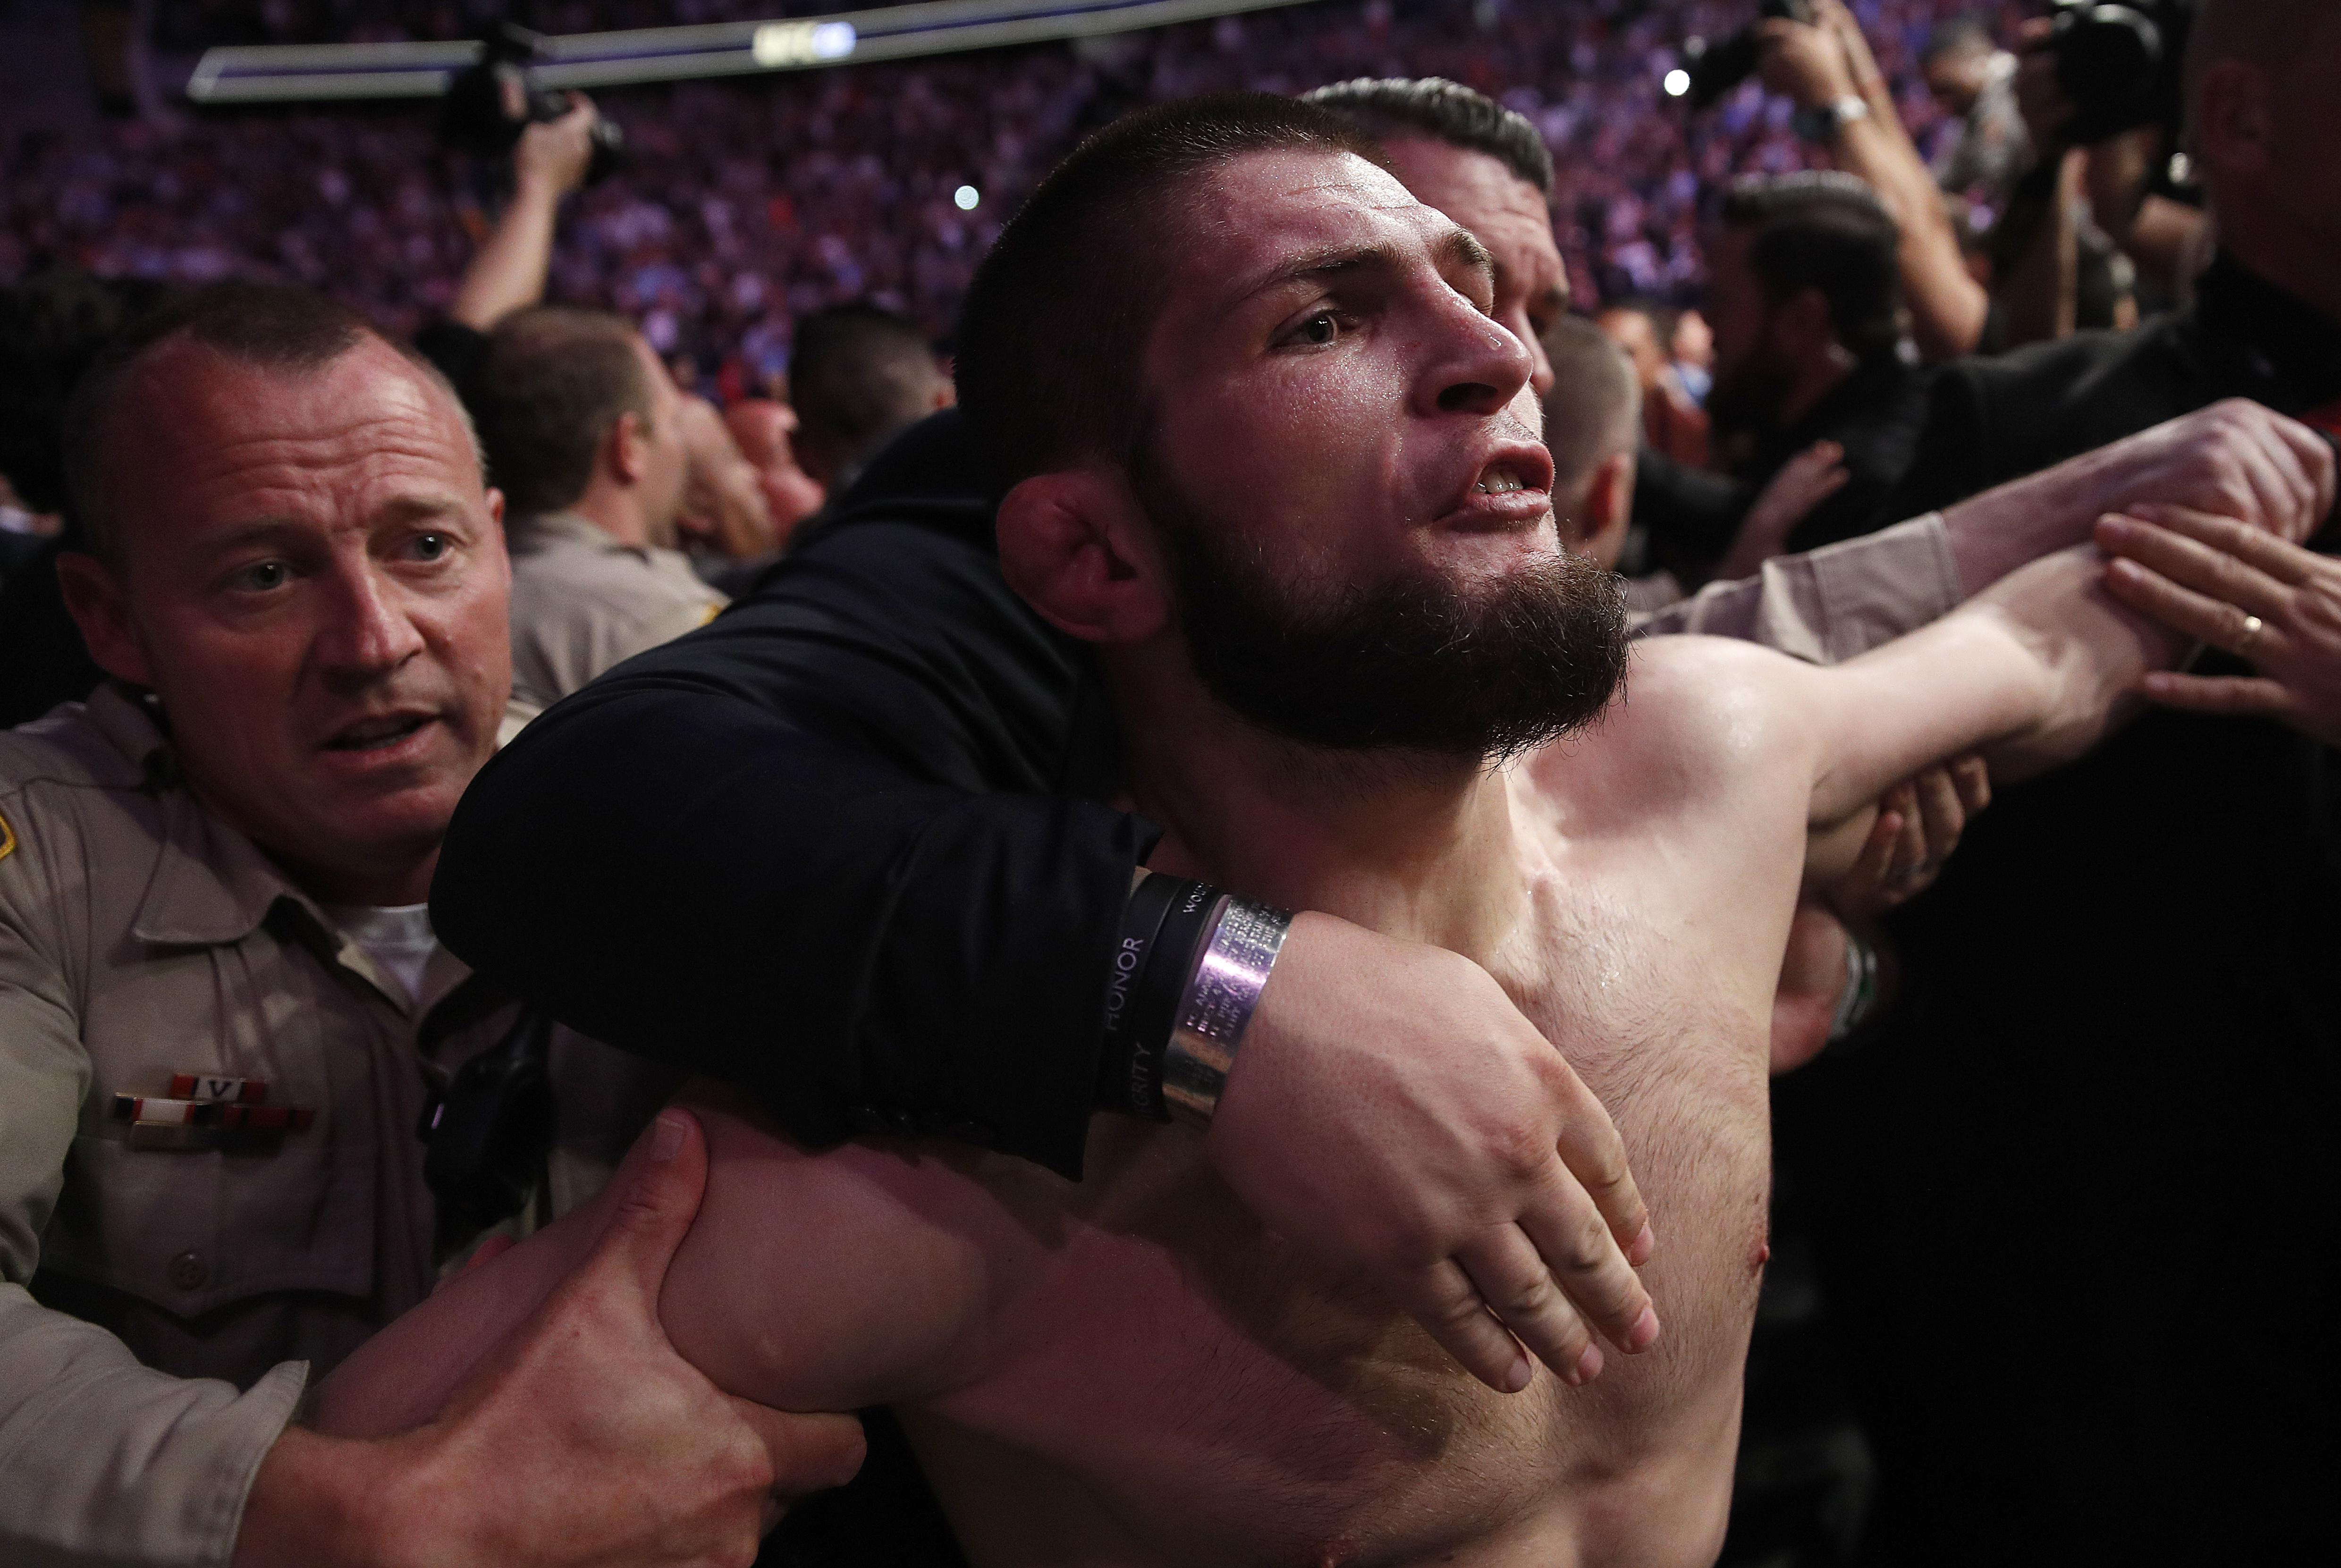 Khabib jumped into the crowd to attack members of the McGregor team after the fight